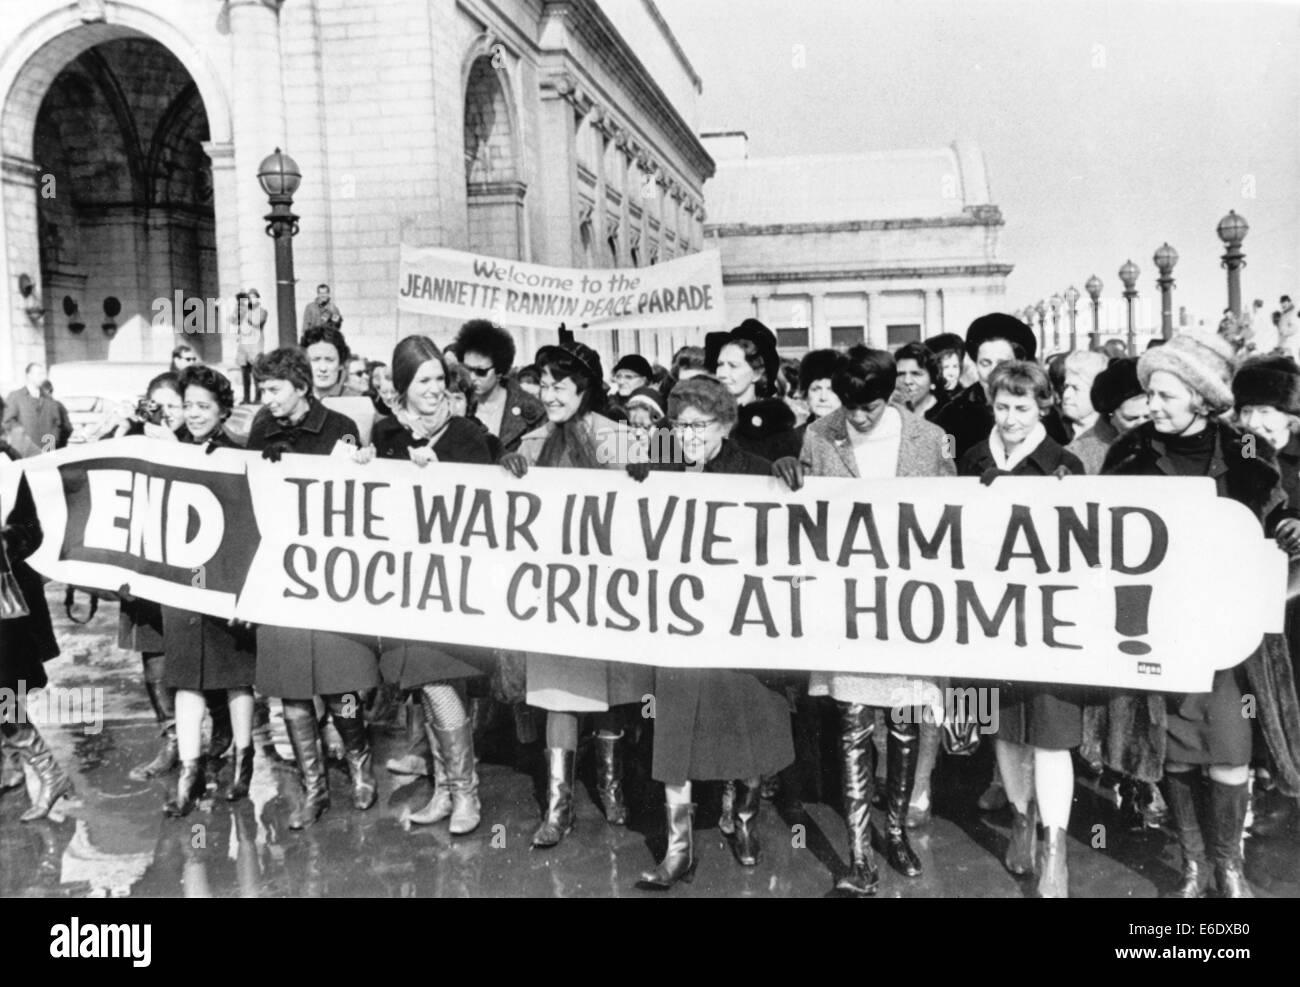 Crowd of Women including Jeannette Rankin (center with glasses), First Woman Elected to Congress, Protesting Vietnam - Stock Image